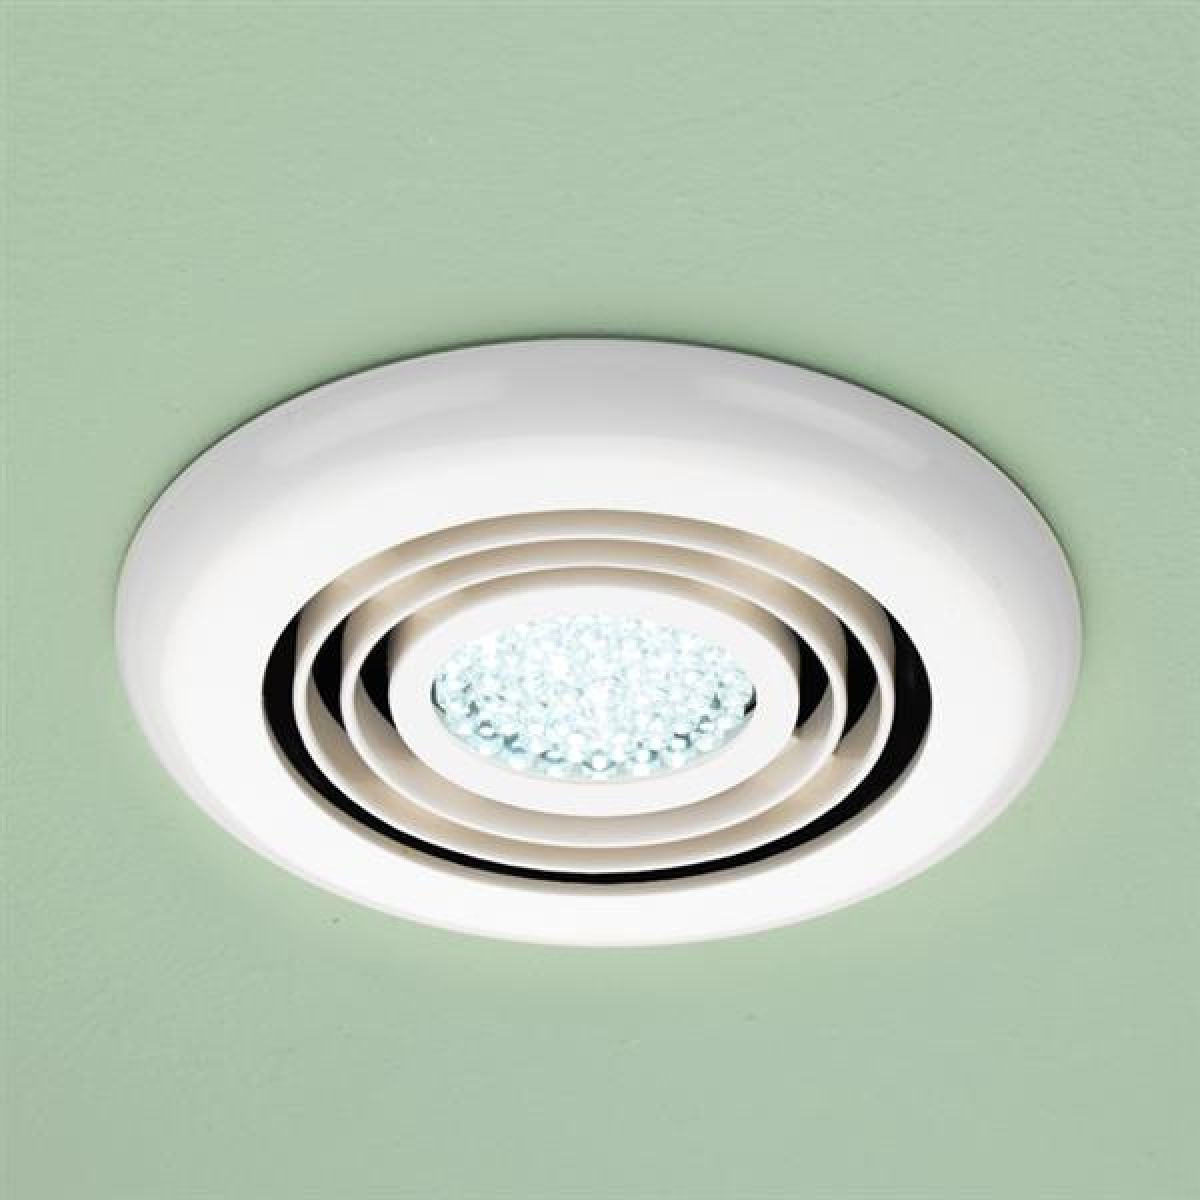 HiB Turbo Cool White LED Inline Bathroom Extractor Fan in White